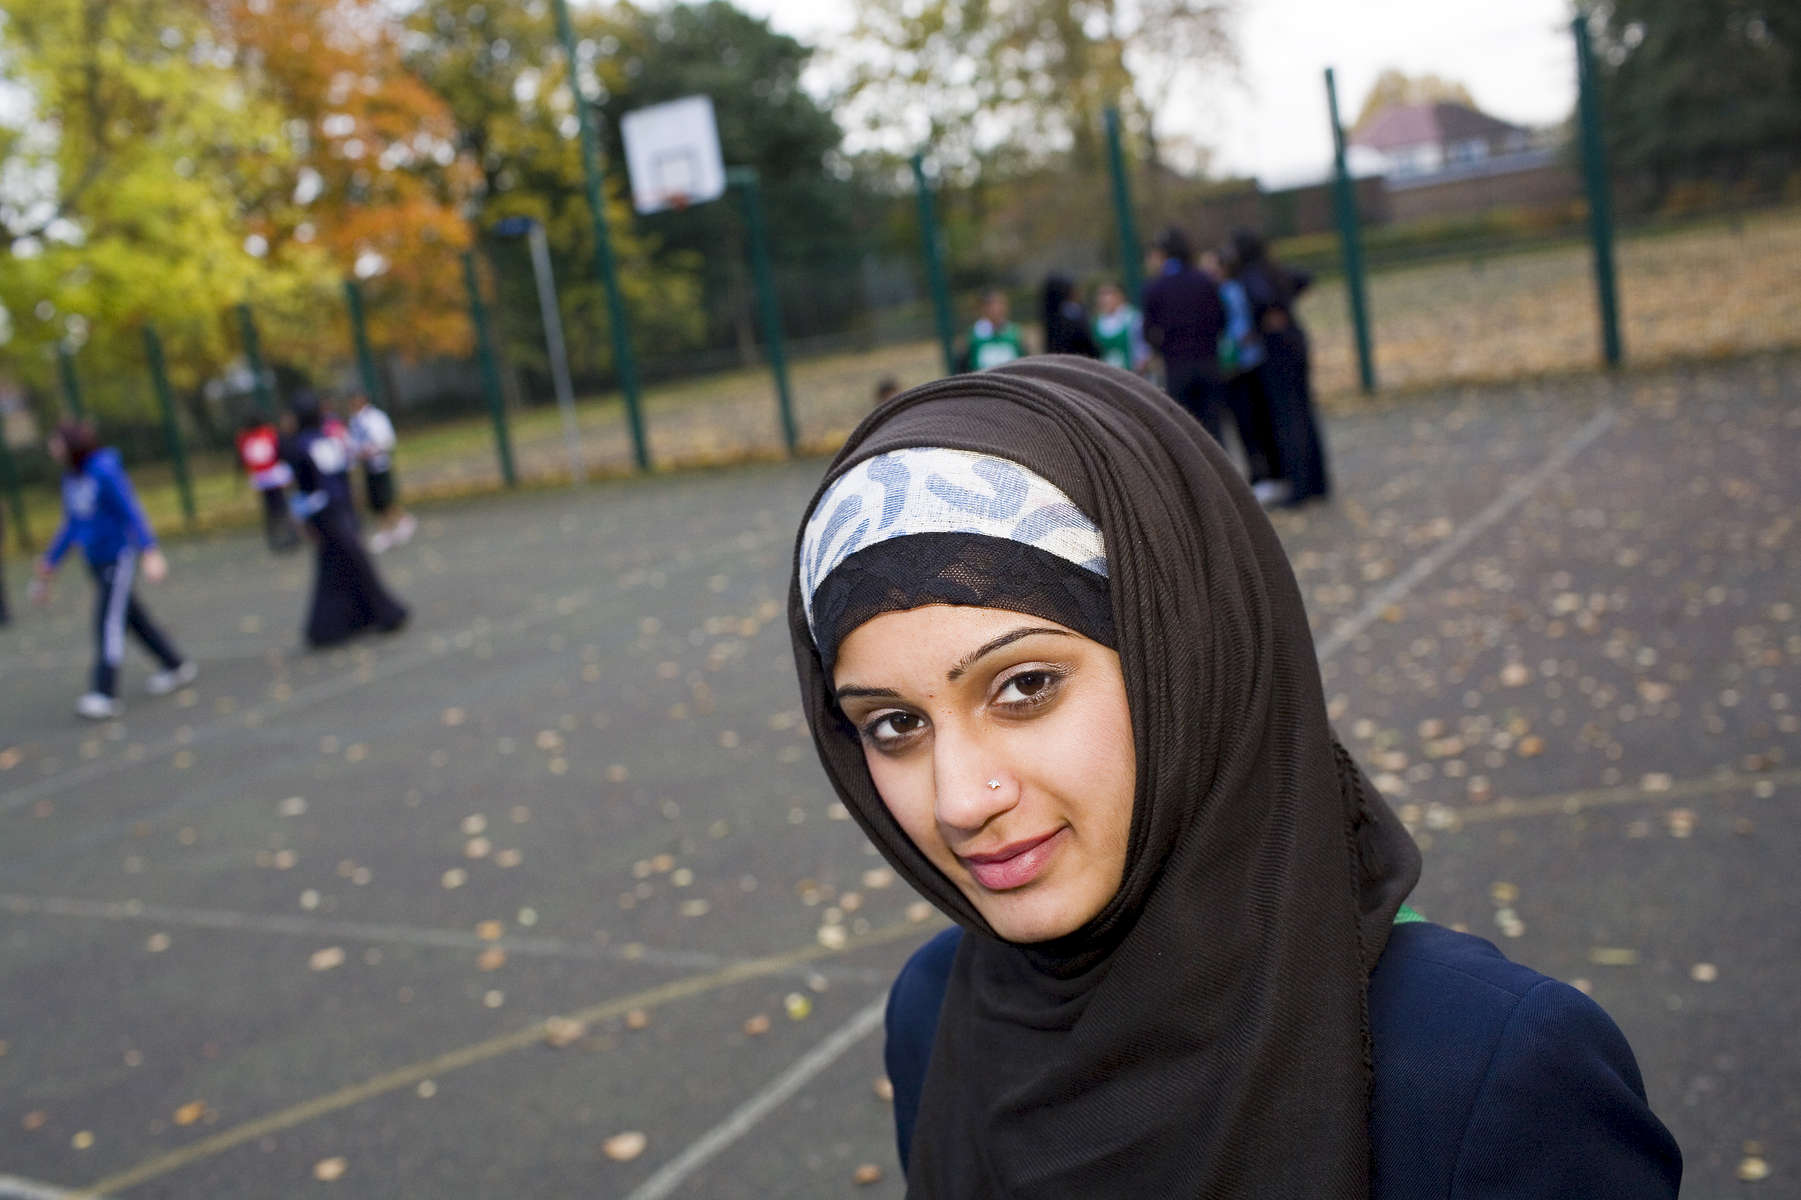 15 year old Muslim, Mahnoor Chaudry at the Tuesday after school netball club at Villiers High School. Mahnoor's father was born in the UK, her mother arrived from Pakistan in the late 1980's.Villiers High School is in the town of Southall. It has a very wide ethnic diversity. 45 different 1st spoken languages are listed among the 1208 pupils. 25 ethnic groups are represented with Indian, Pakistani and Black-Somali the three highest.Southall is a suburban district of West London, England. The town has one of the largest concentrations of South Asian people outside of the Indian sub-continent. Over 55% os Southall's population of 70,000 is Indian/Pakistani, with less than 10% being White British.